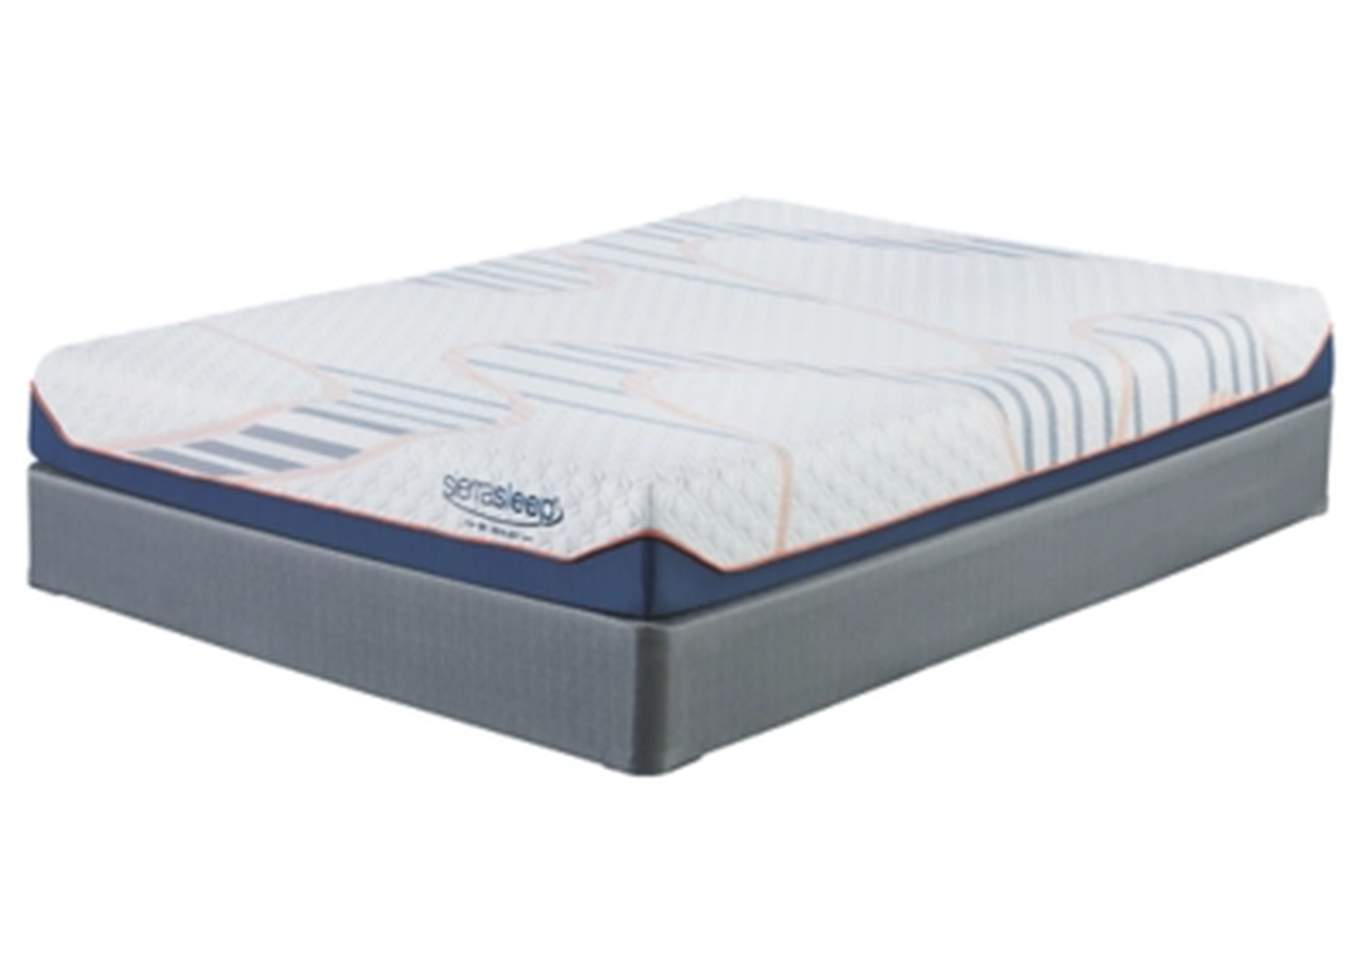 8 Inch MyGel White King Mattress w/Foundation,Sierra Sleep by Ashley